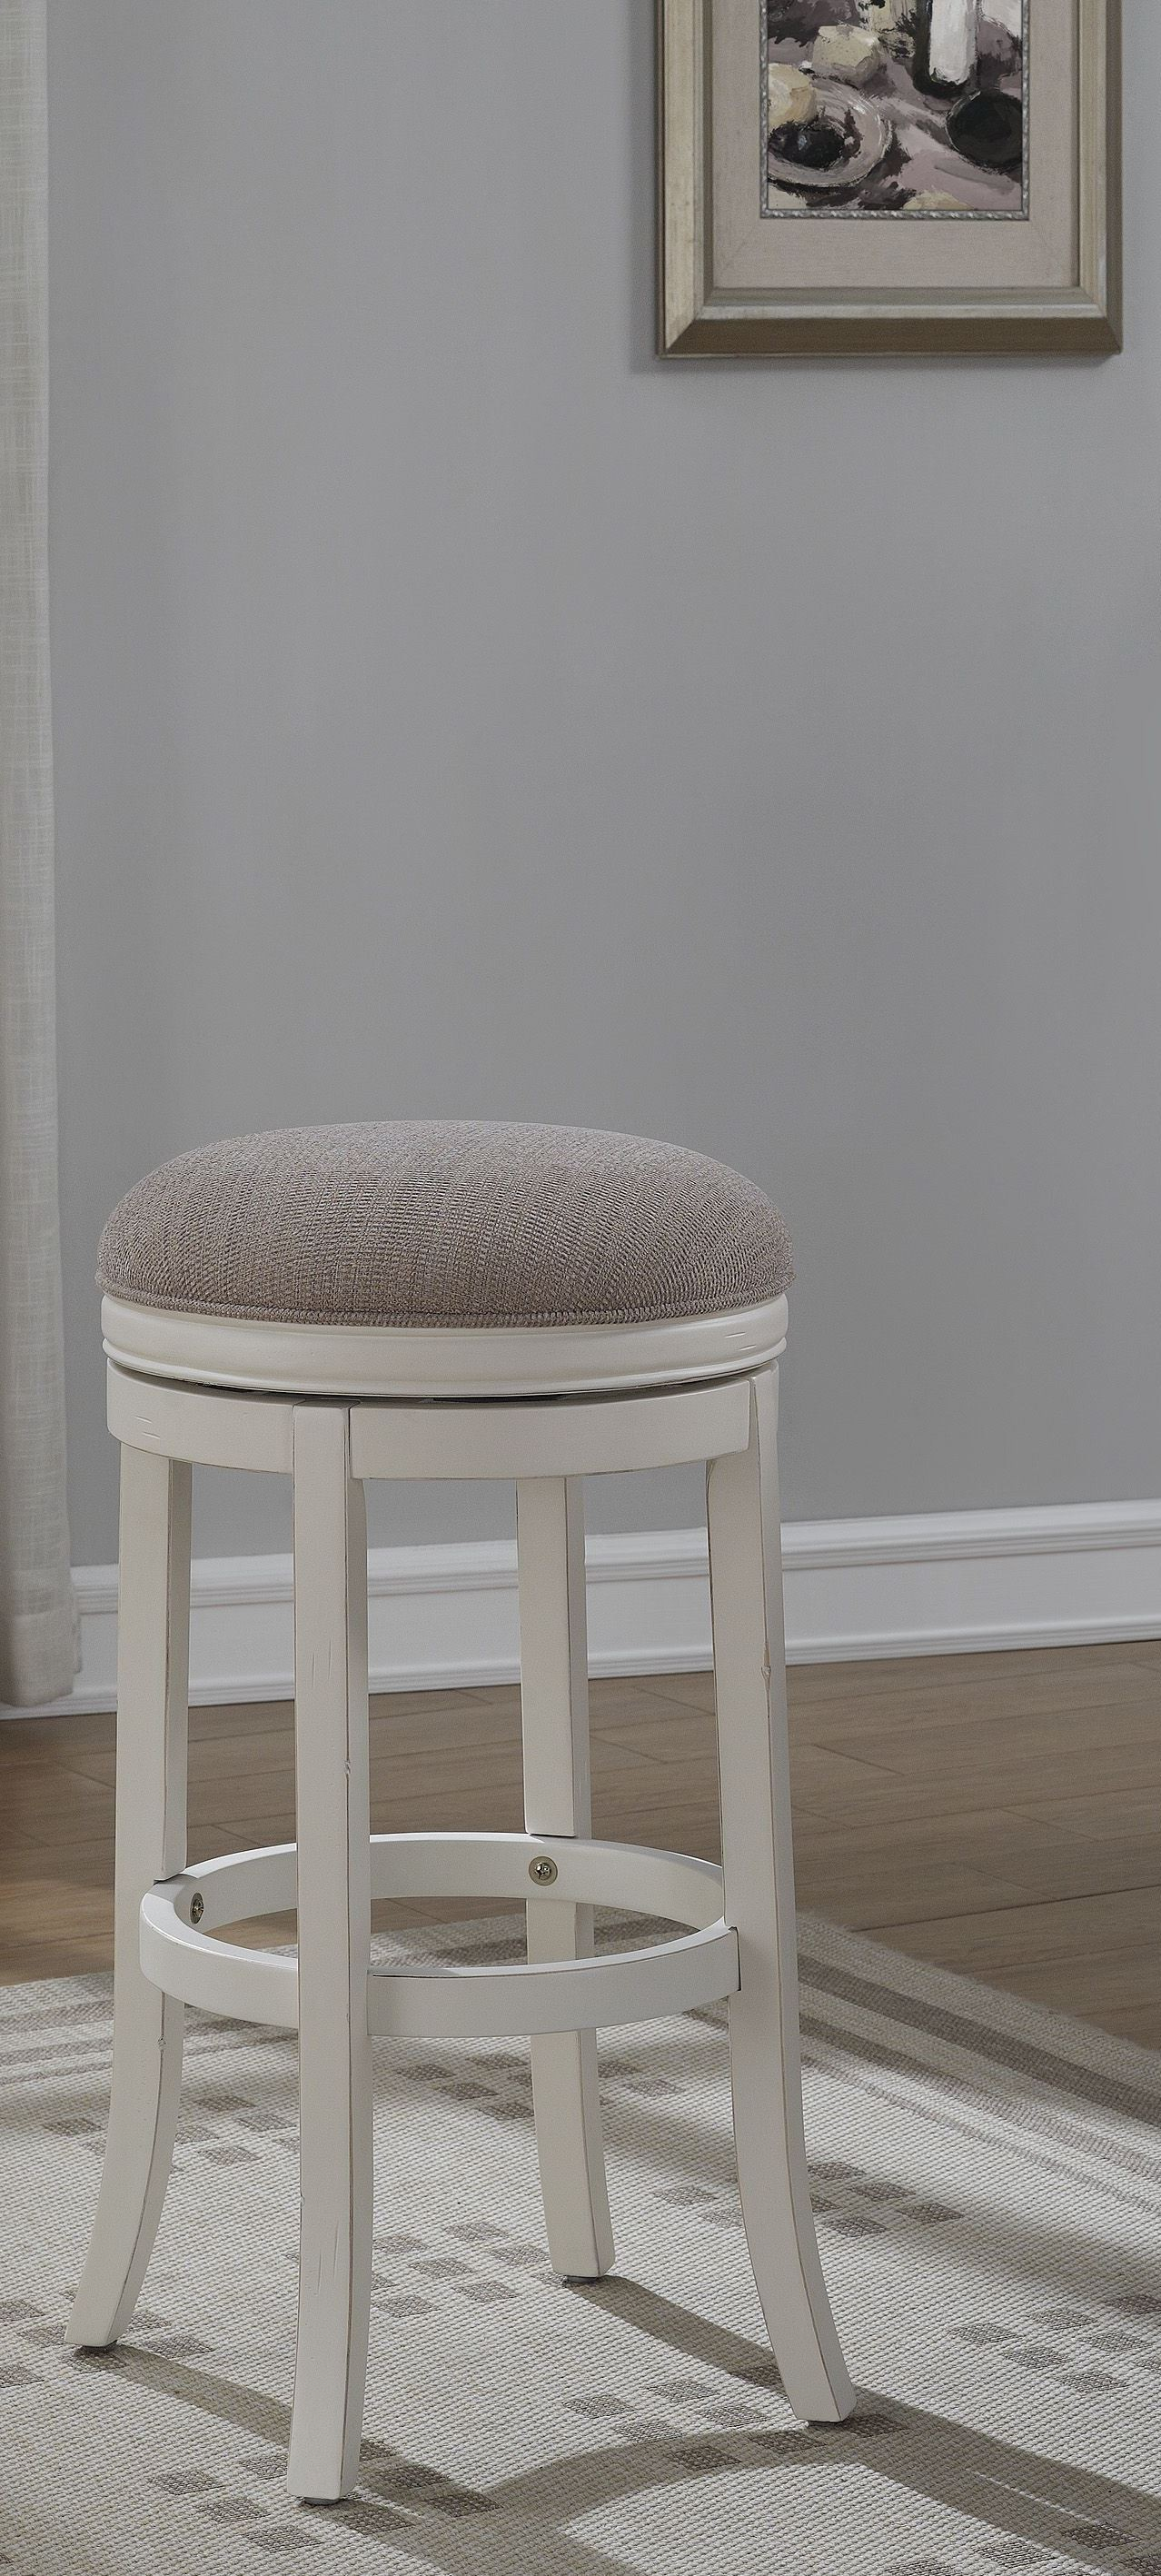 B2 204 34f 34 Quot Wood Frame Backless Bar Stools From